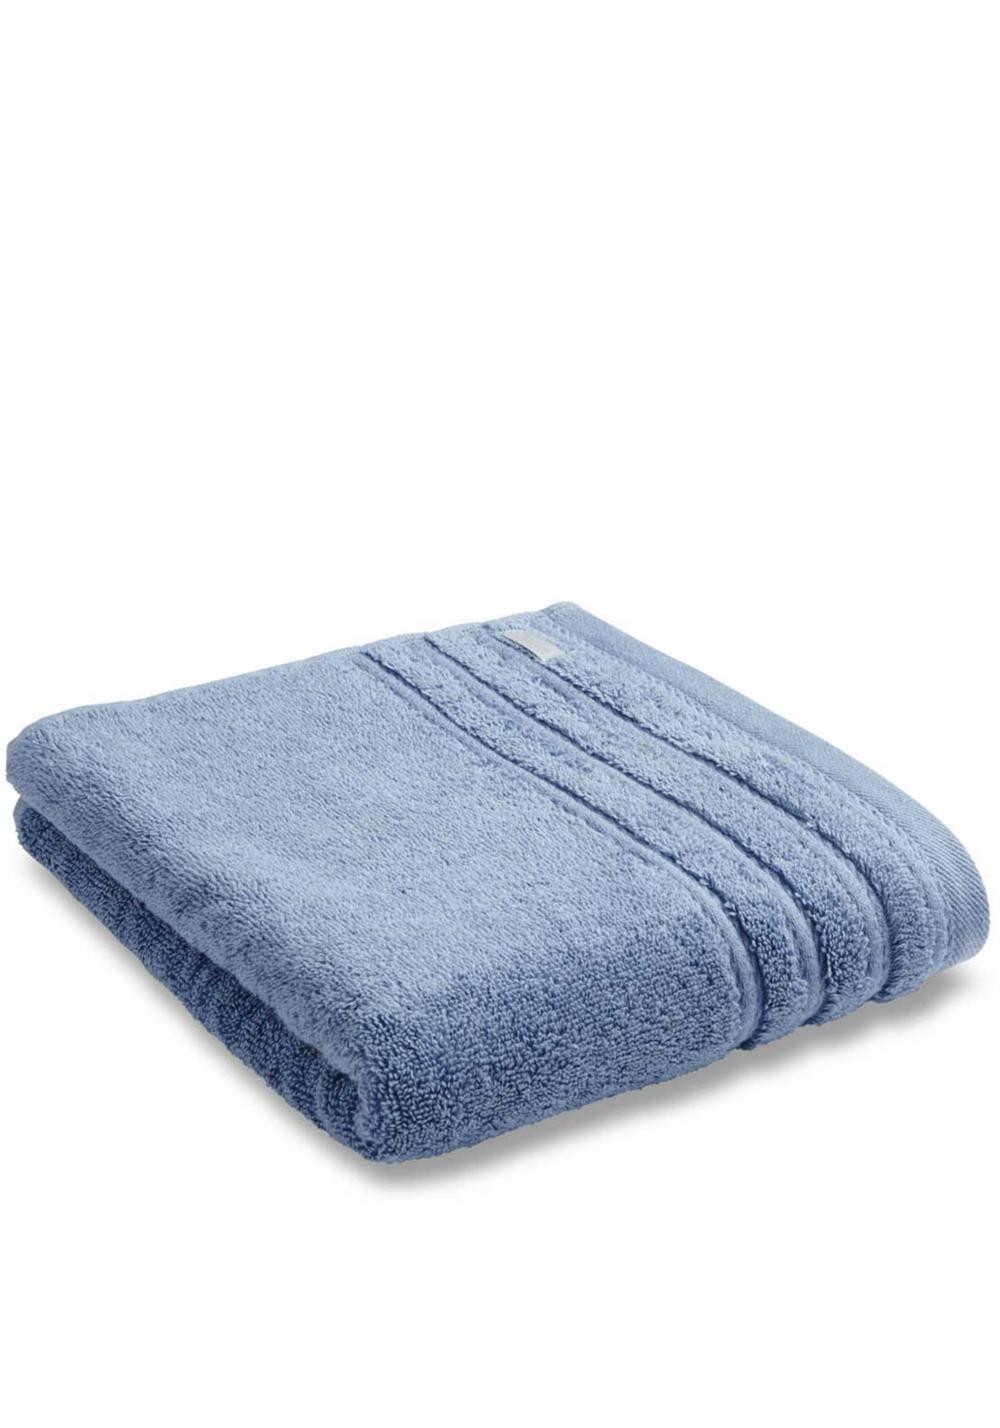 Bianca Combed Cotton Towel Range, Denim